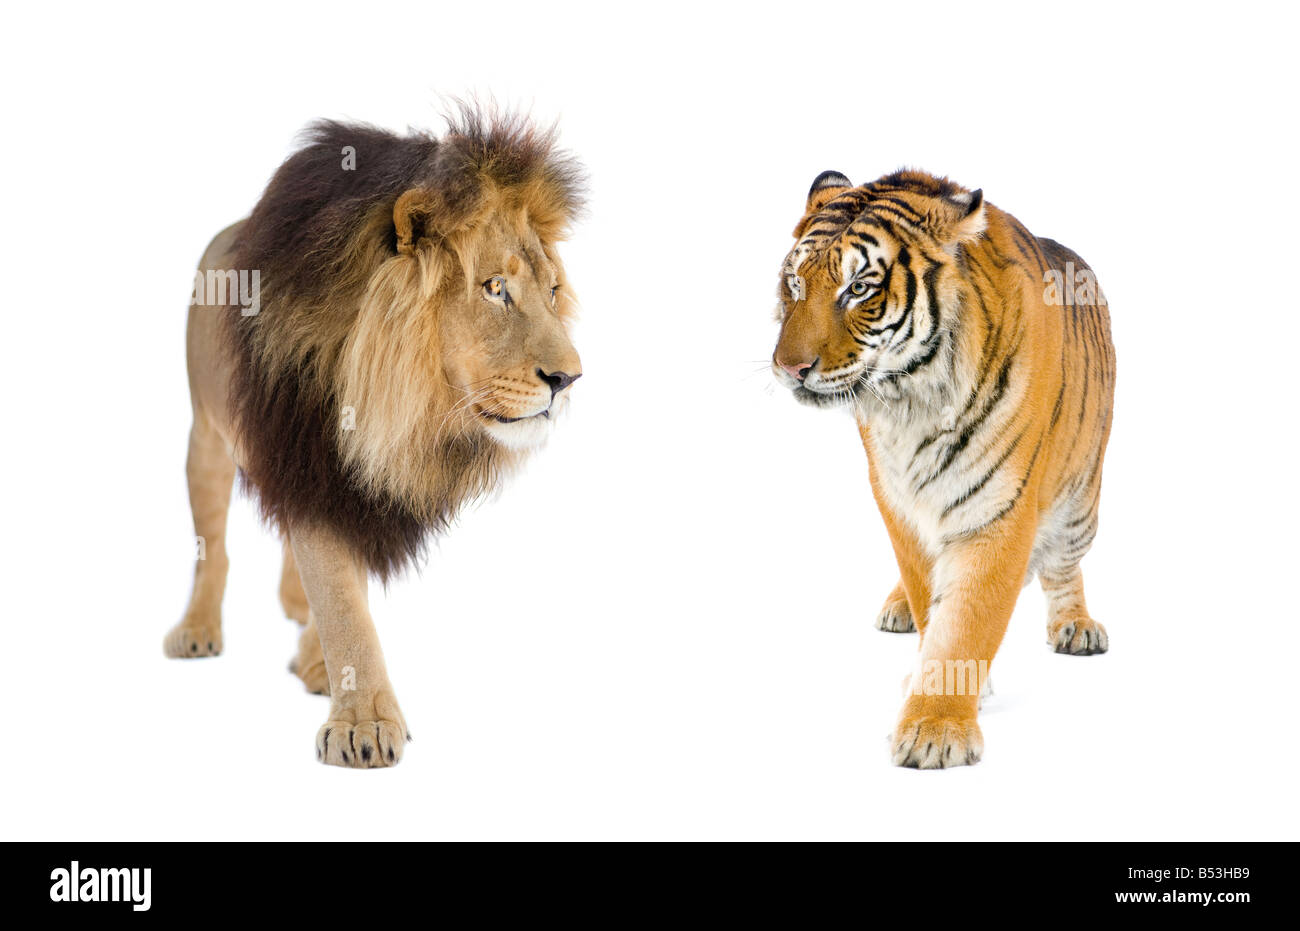 lion and tiger in front of a white background stock photo: 20363149